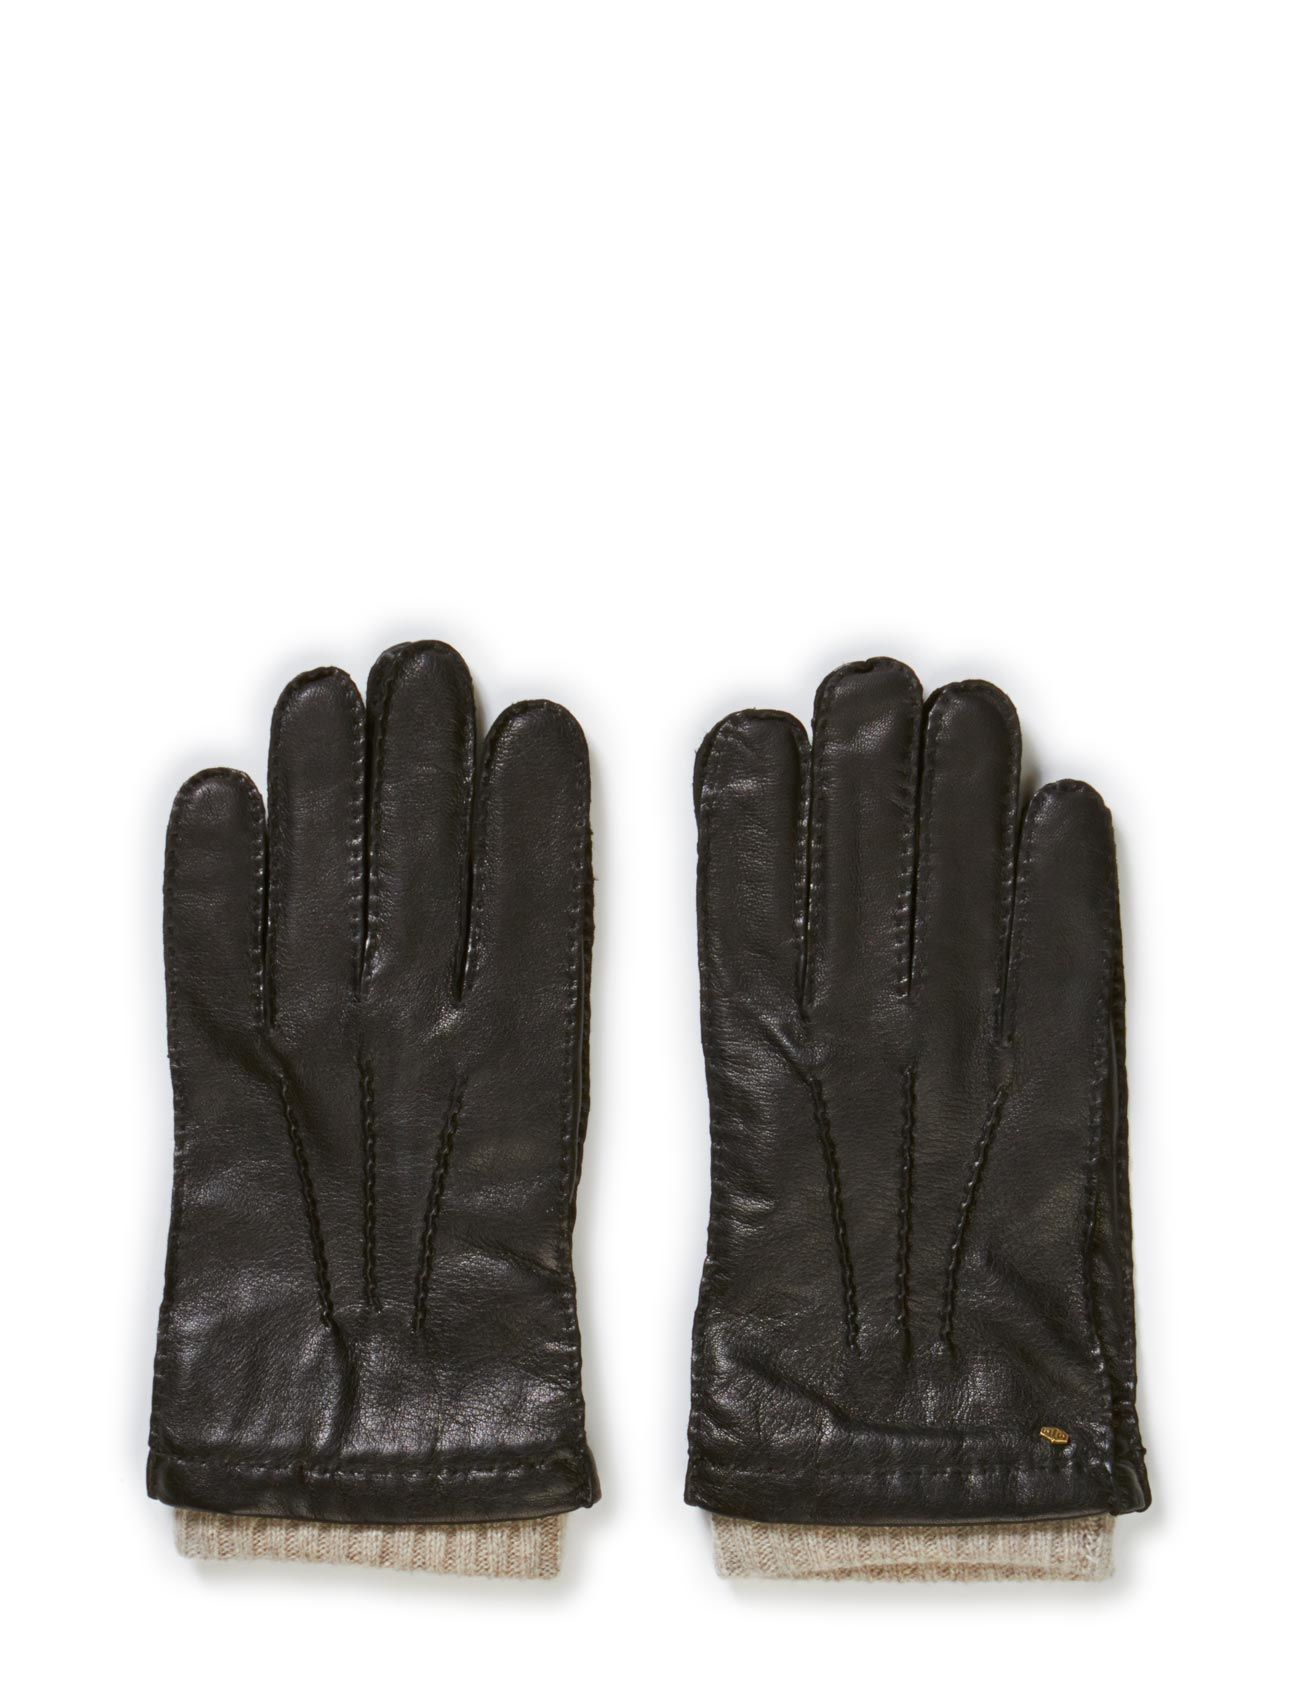 Mjm Men'S Glove Perry Leather Wool/Cashmir MJM Handsker til Herrer i Sort